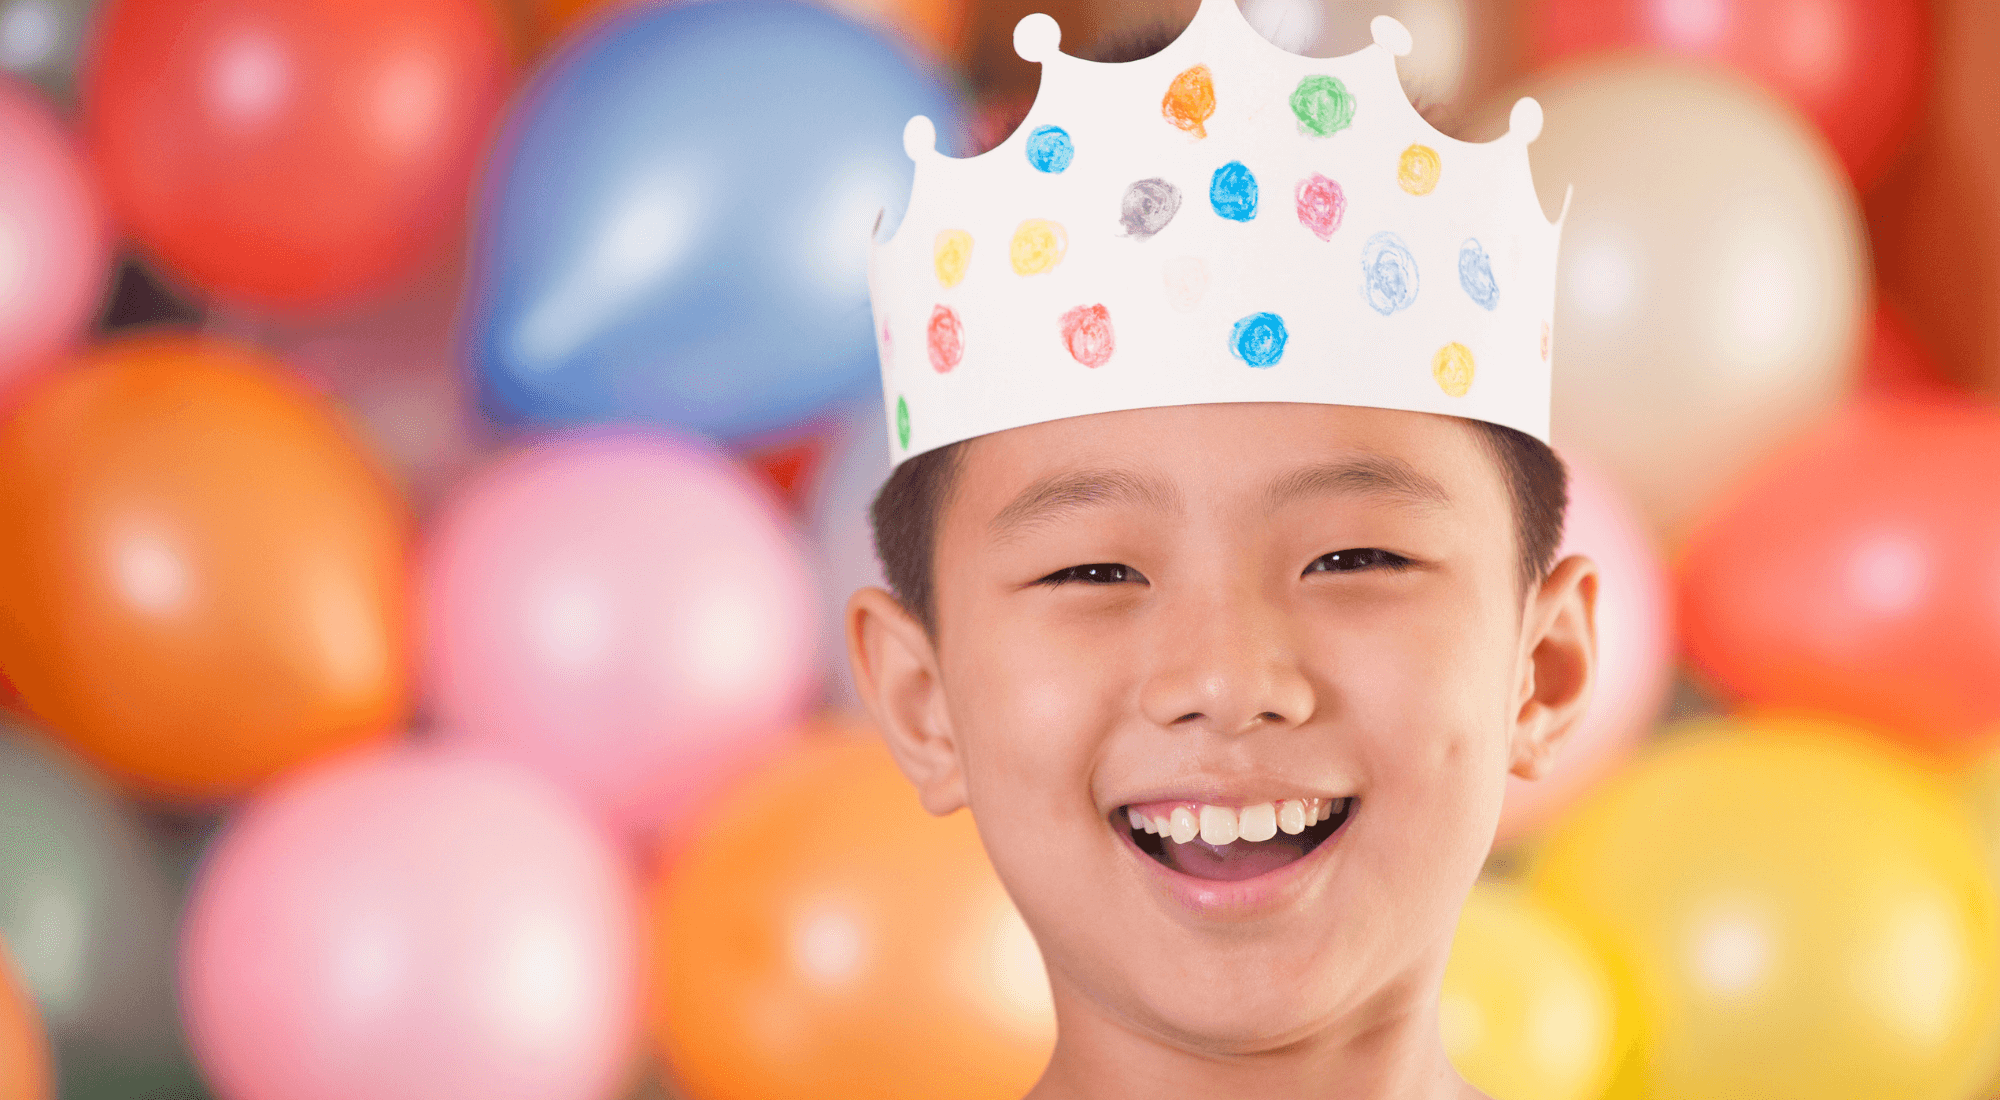 child with party hat and smiling